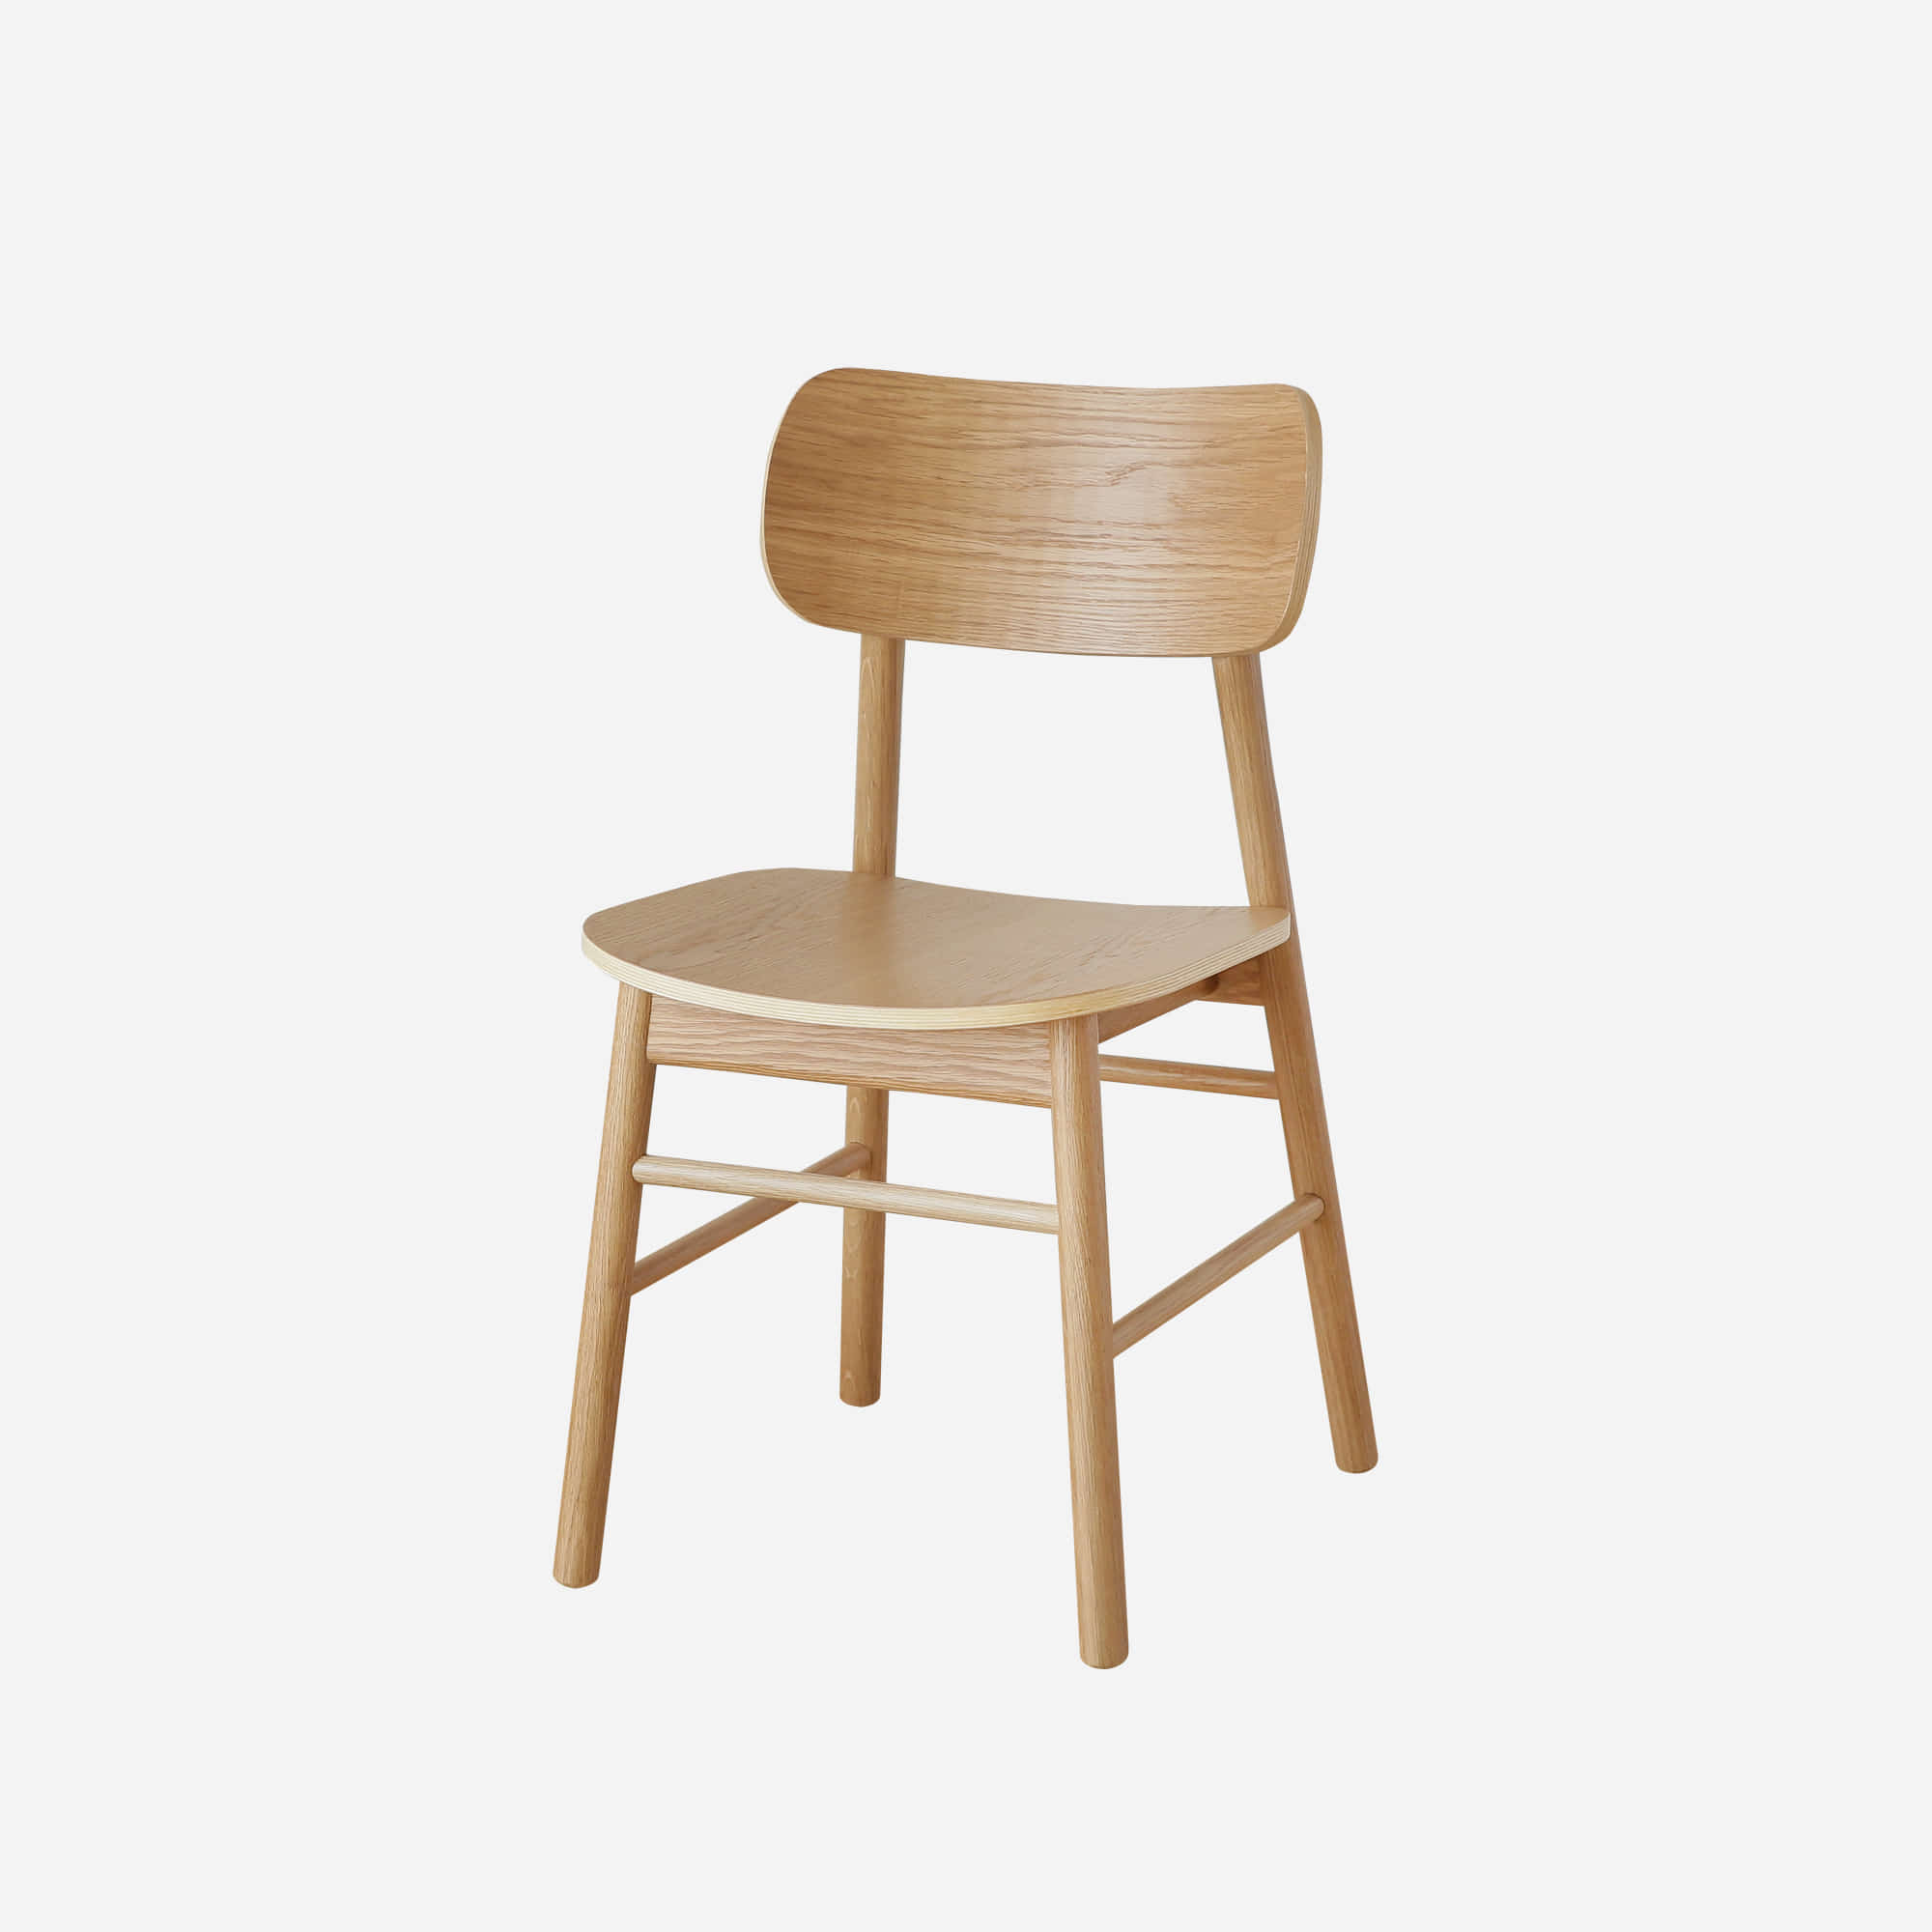 [얼리버드 10%] Oblique Stick Leg P2 Chair